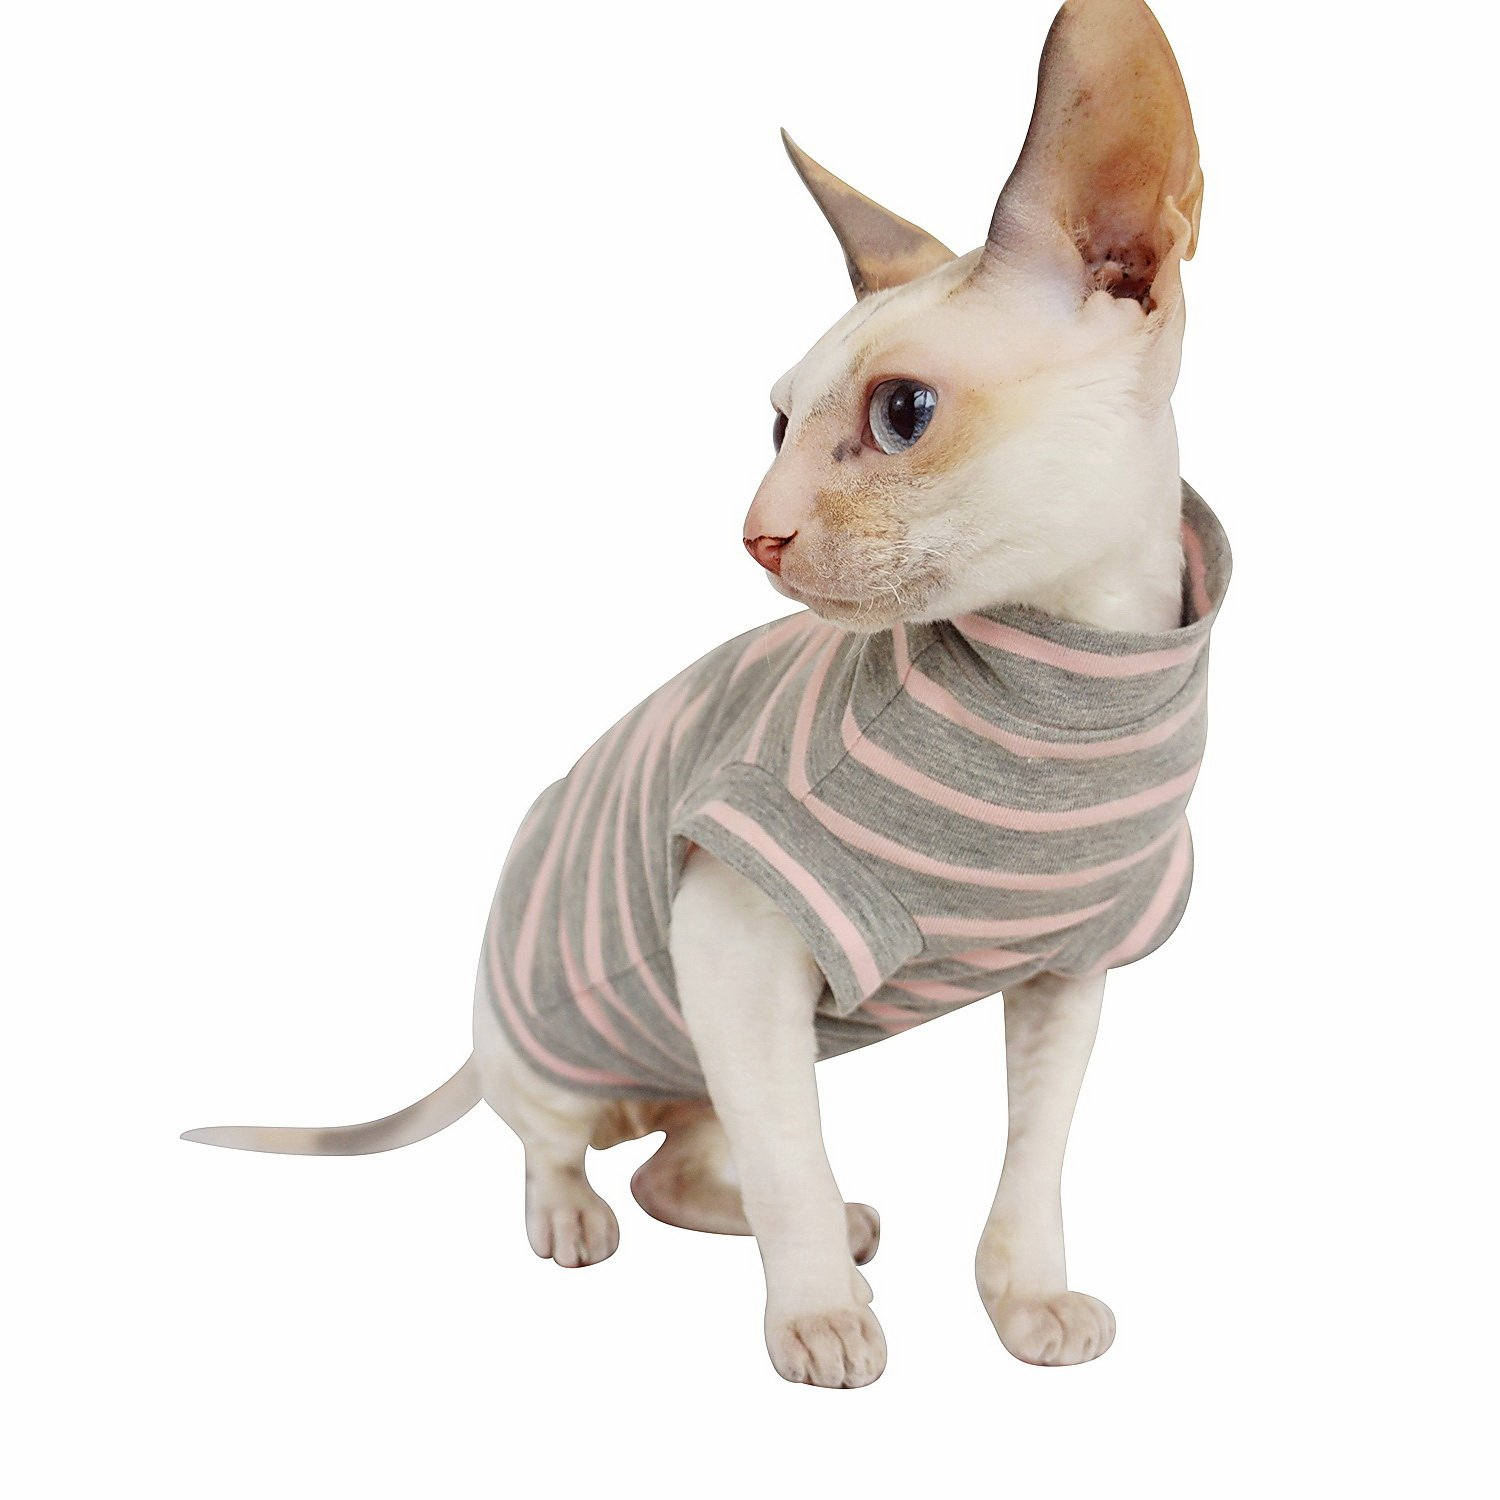 Amazon.com : Kotomoda CatS Turtleneck maxi New Pijama (XL) : Pet Supplies